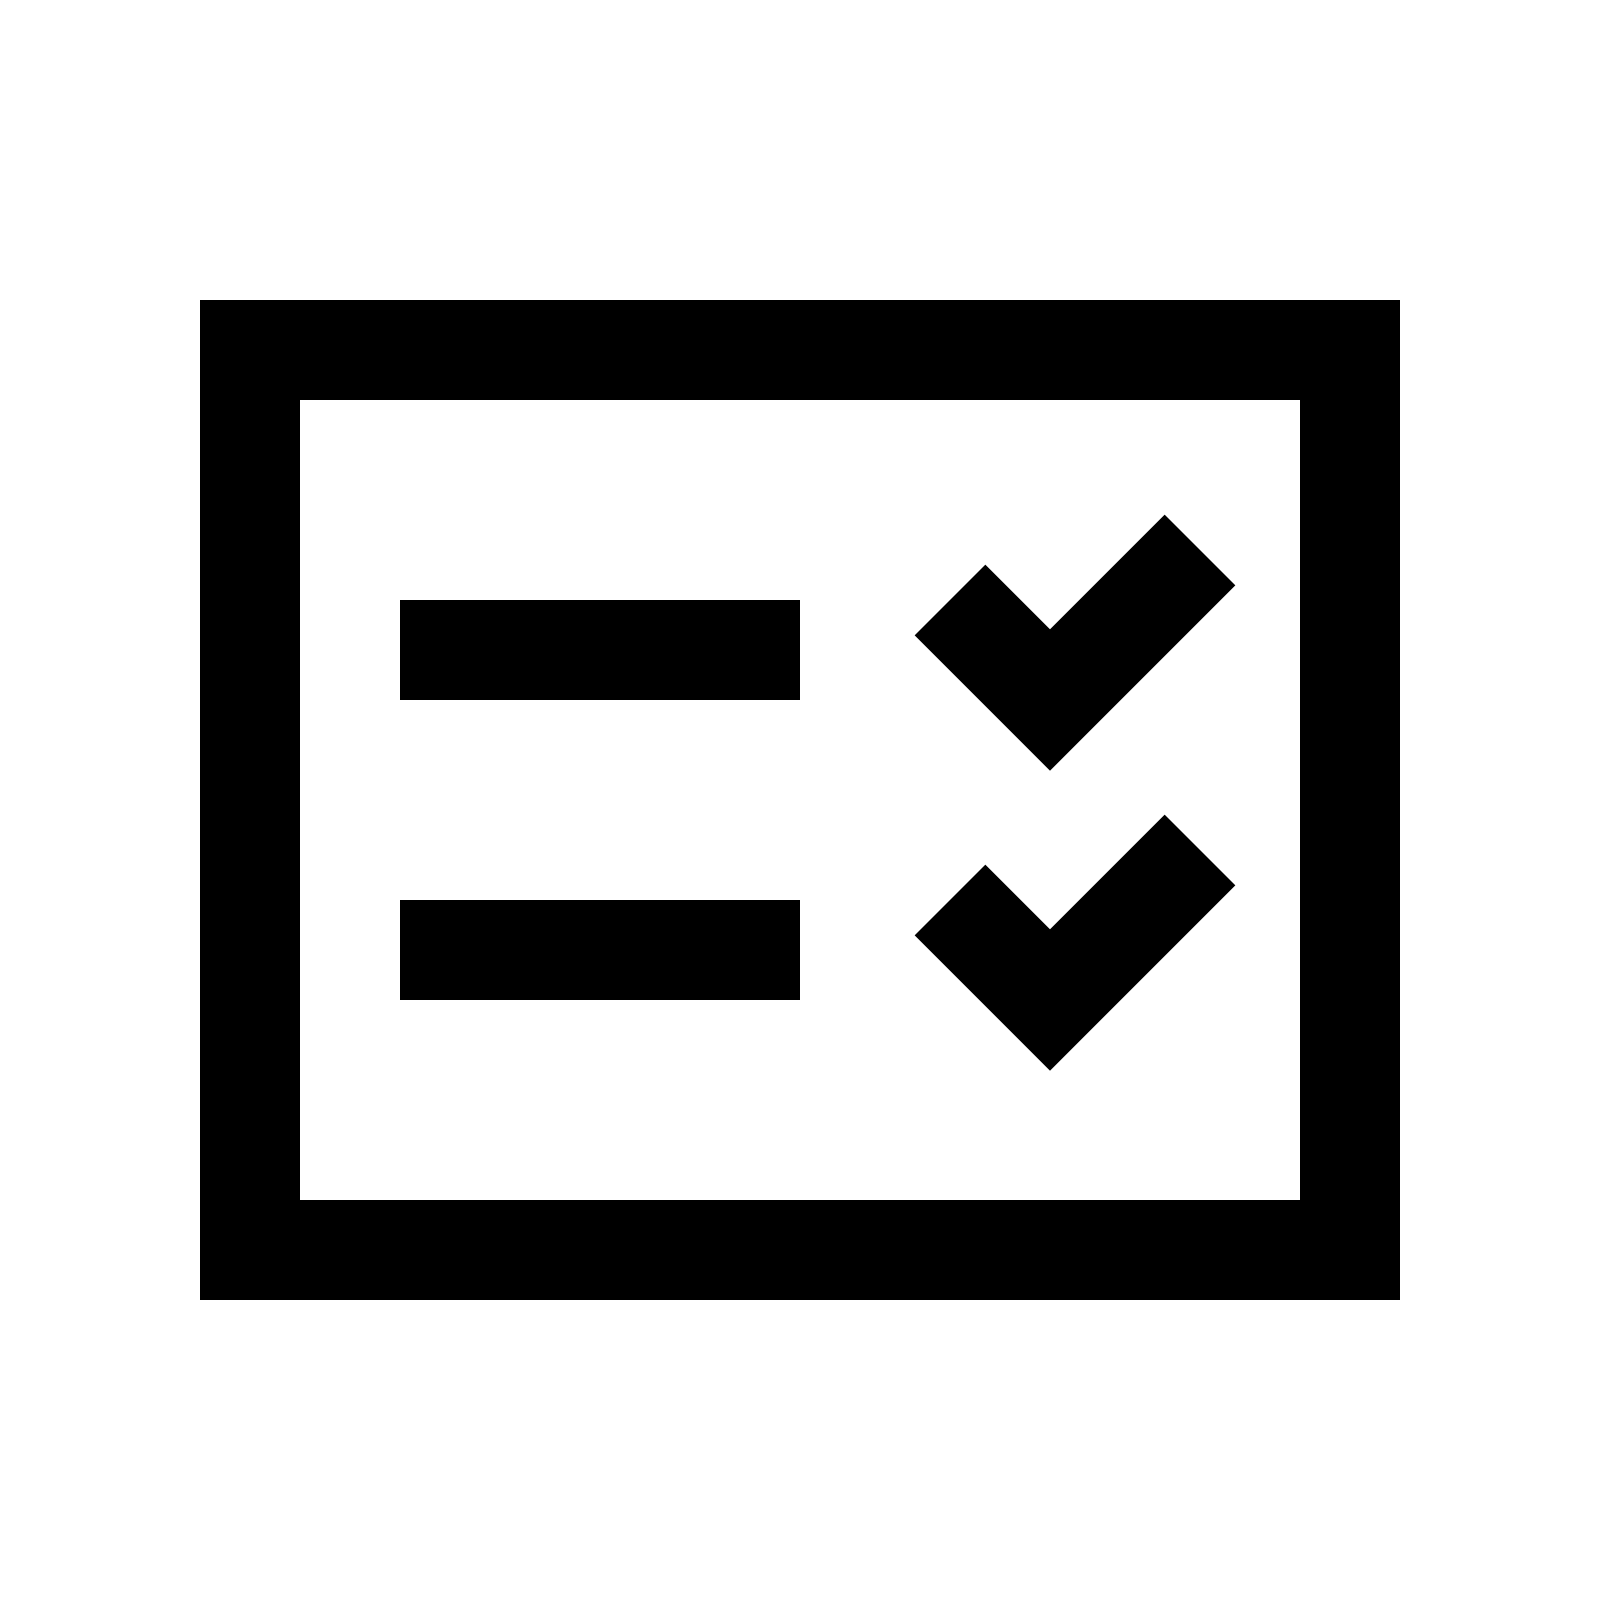 1600x1600 Png Report Card Transparent Report Card.png Images. Pluspng